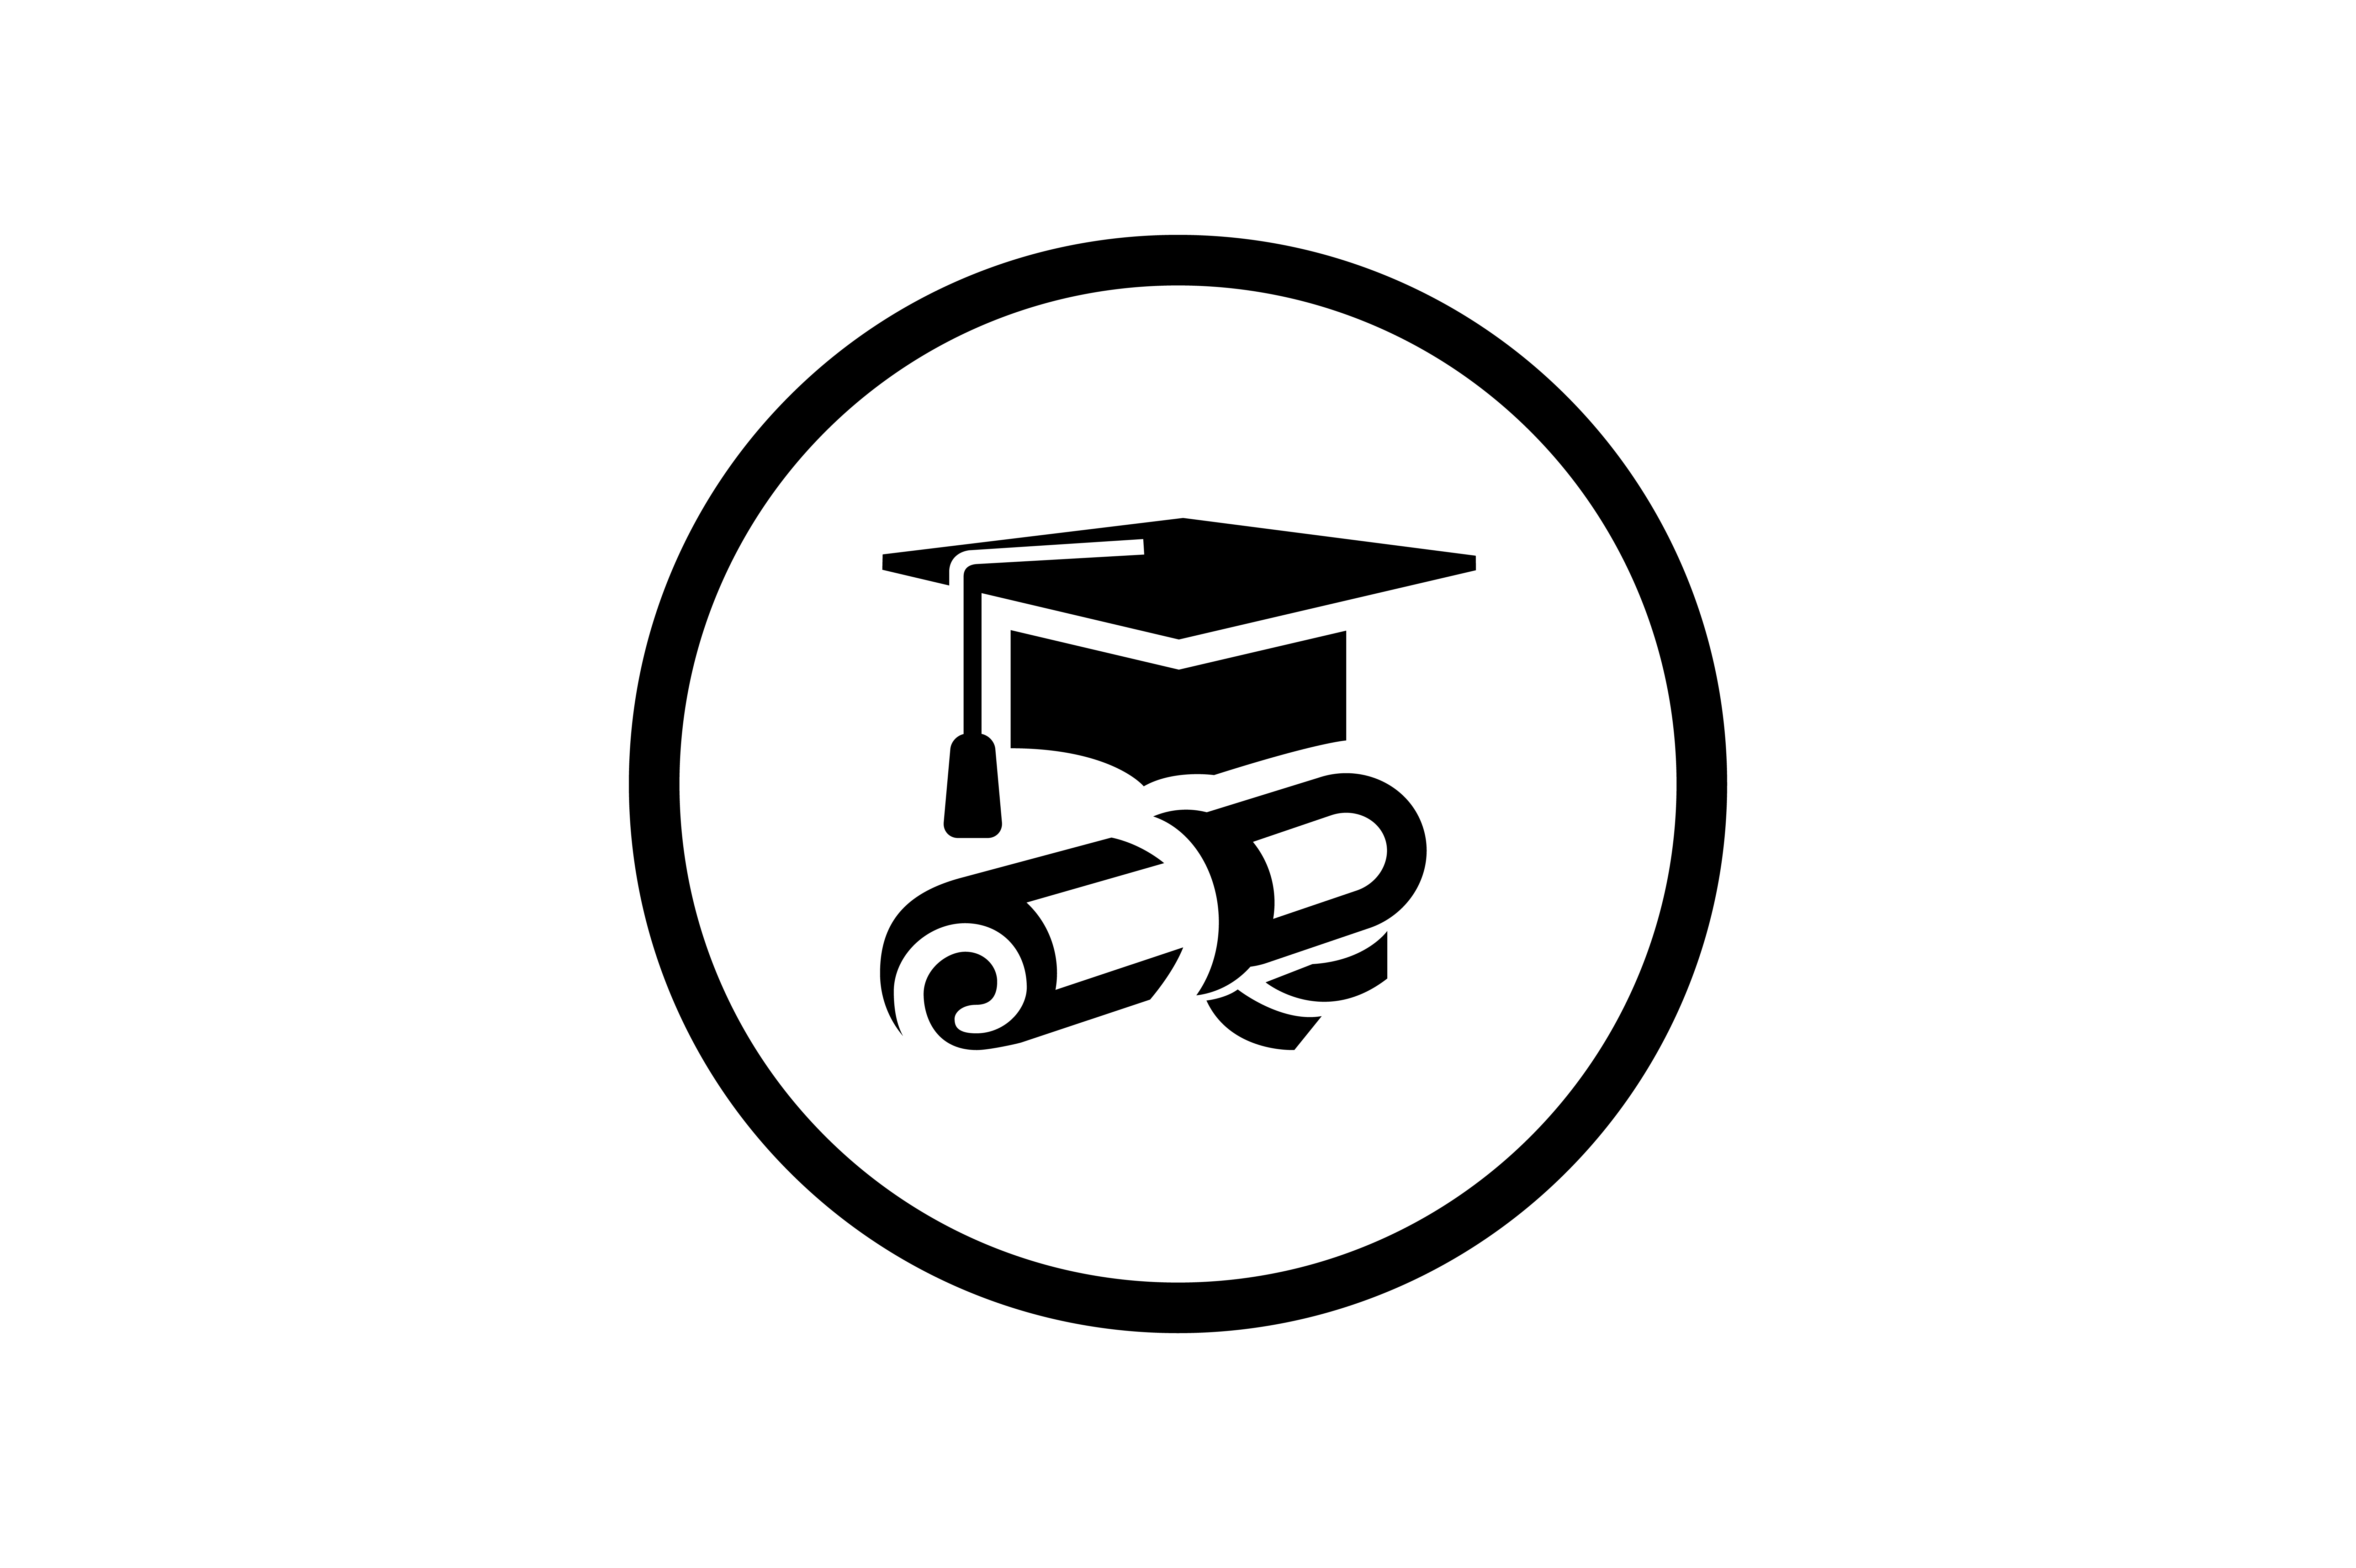 Download Free School Education Icon Graphic By Zafreeloicon Creative Fabrica for Cricut Explore, Silhouette and other cutting machines.